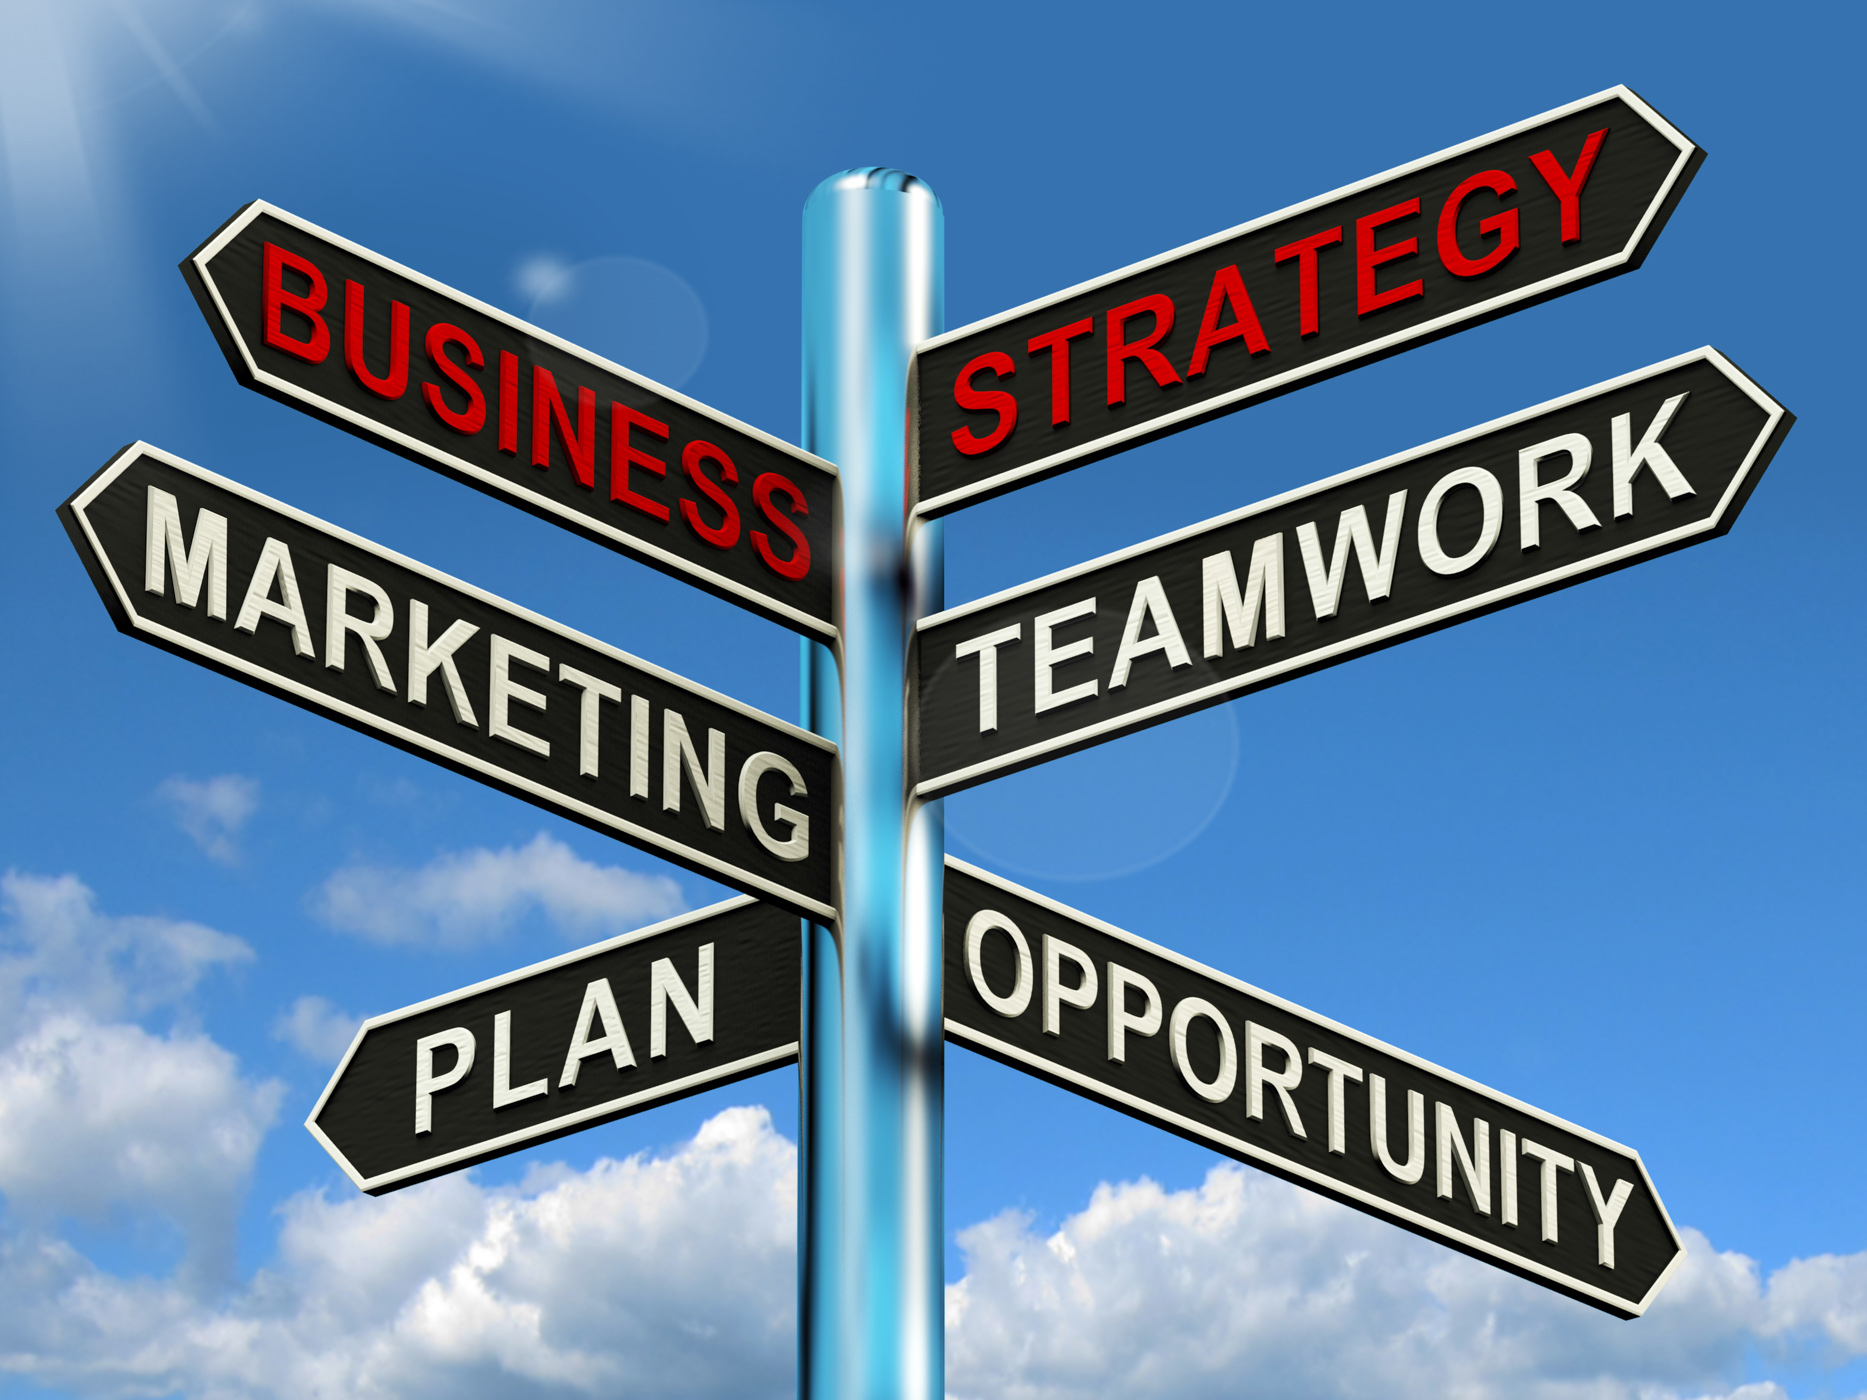 Business Strategy Signpost Showing Teamwork Marketing And Plans, Signpost, Roadsign, Planning, Plan, HQ Photo